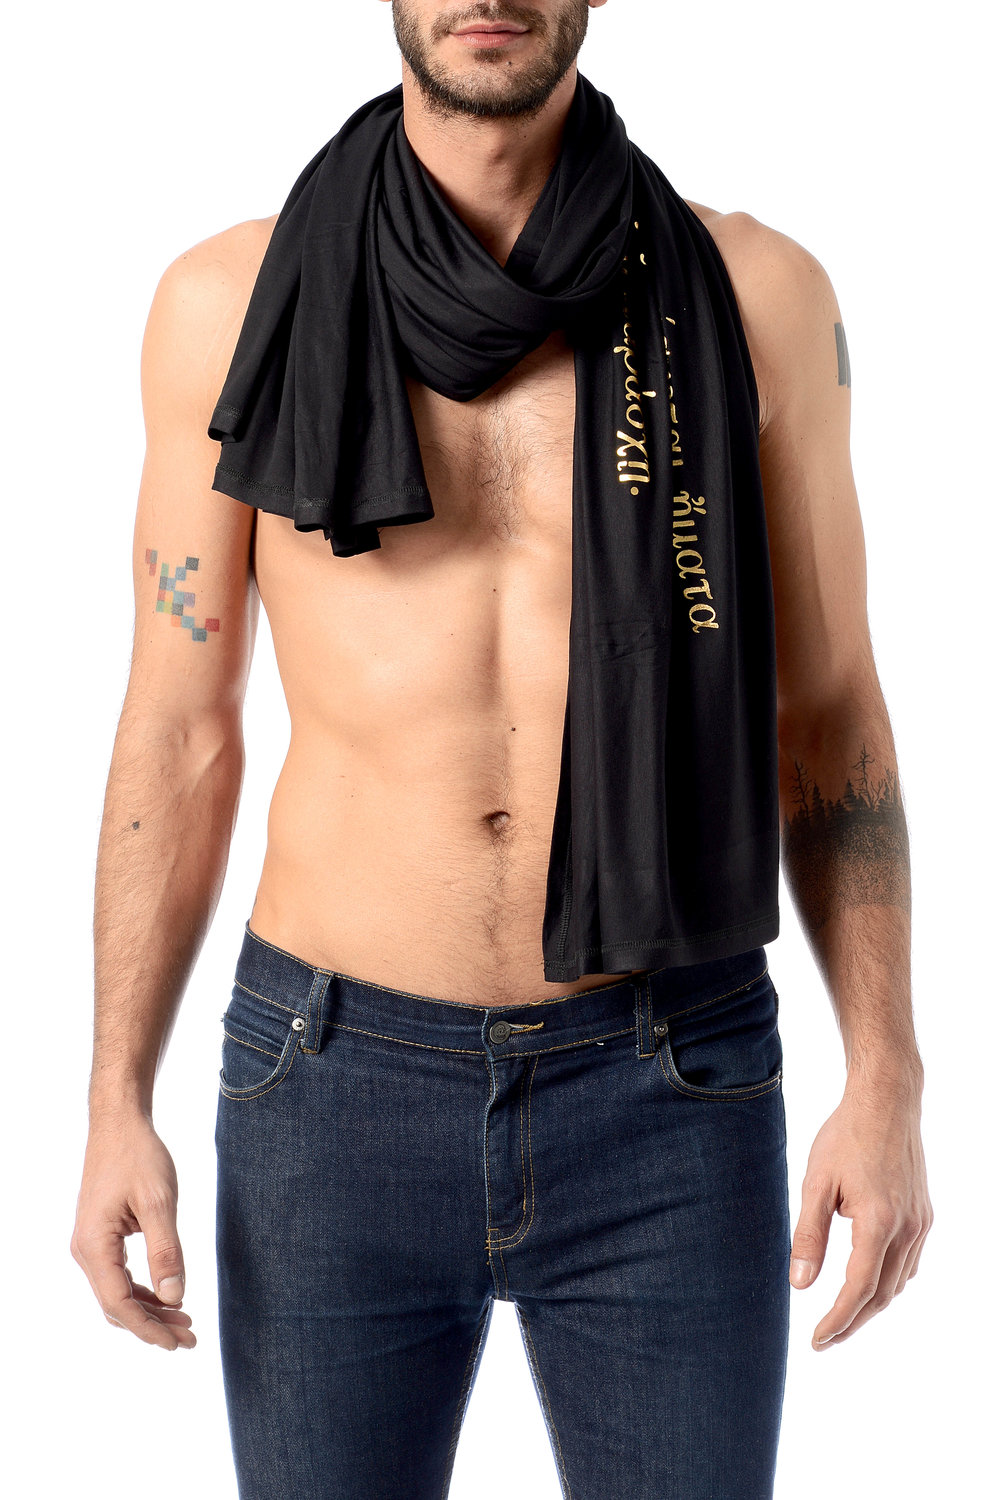 hospitality-phrase-pareo-as-scarf-on-men's-look-golden-foil-on-black-viscose.jpg